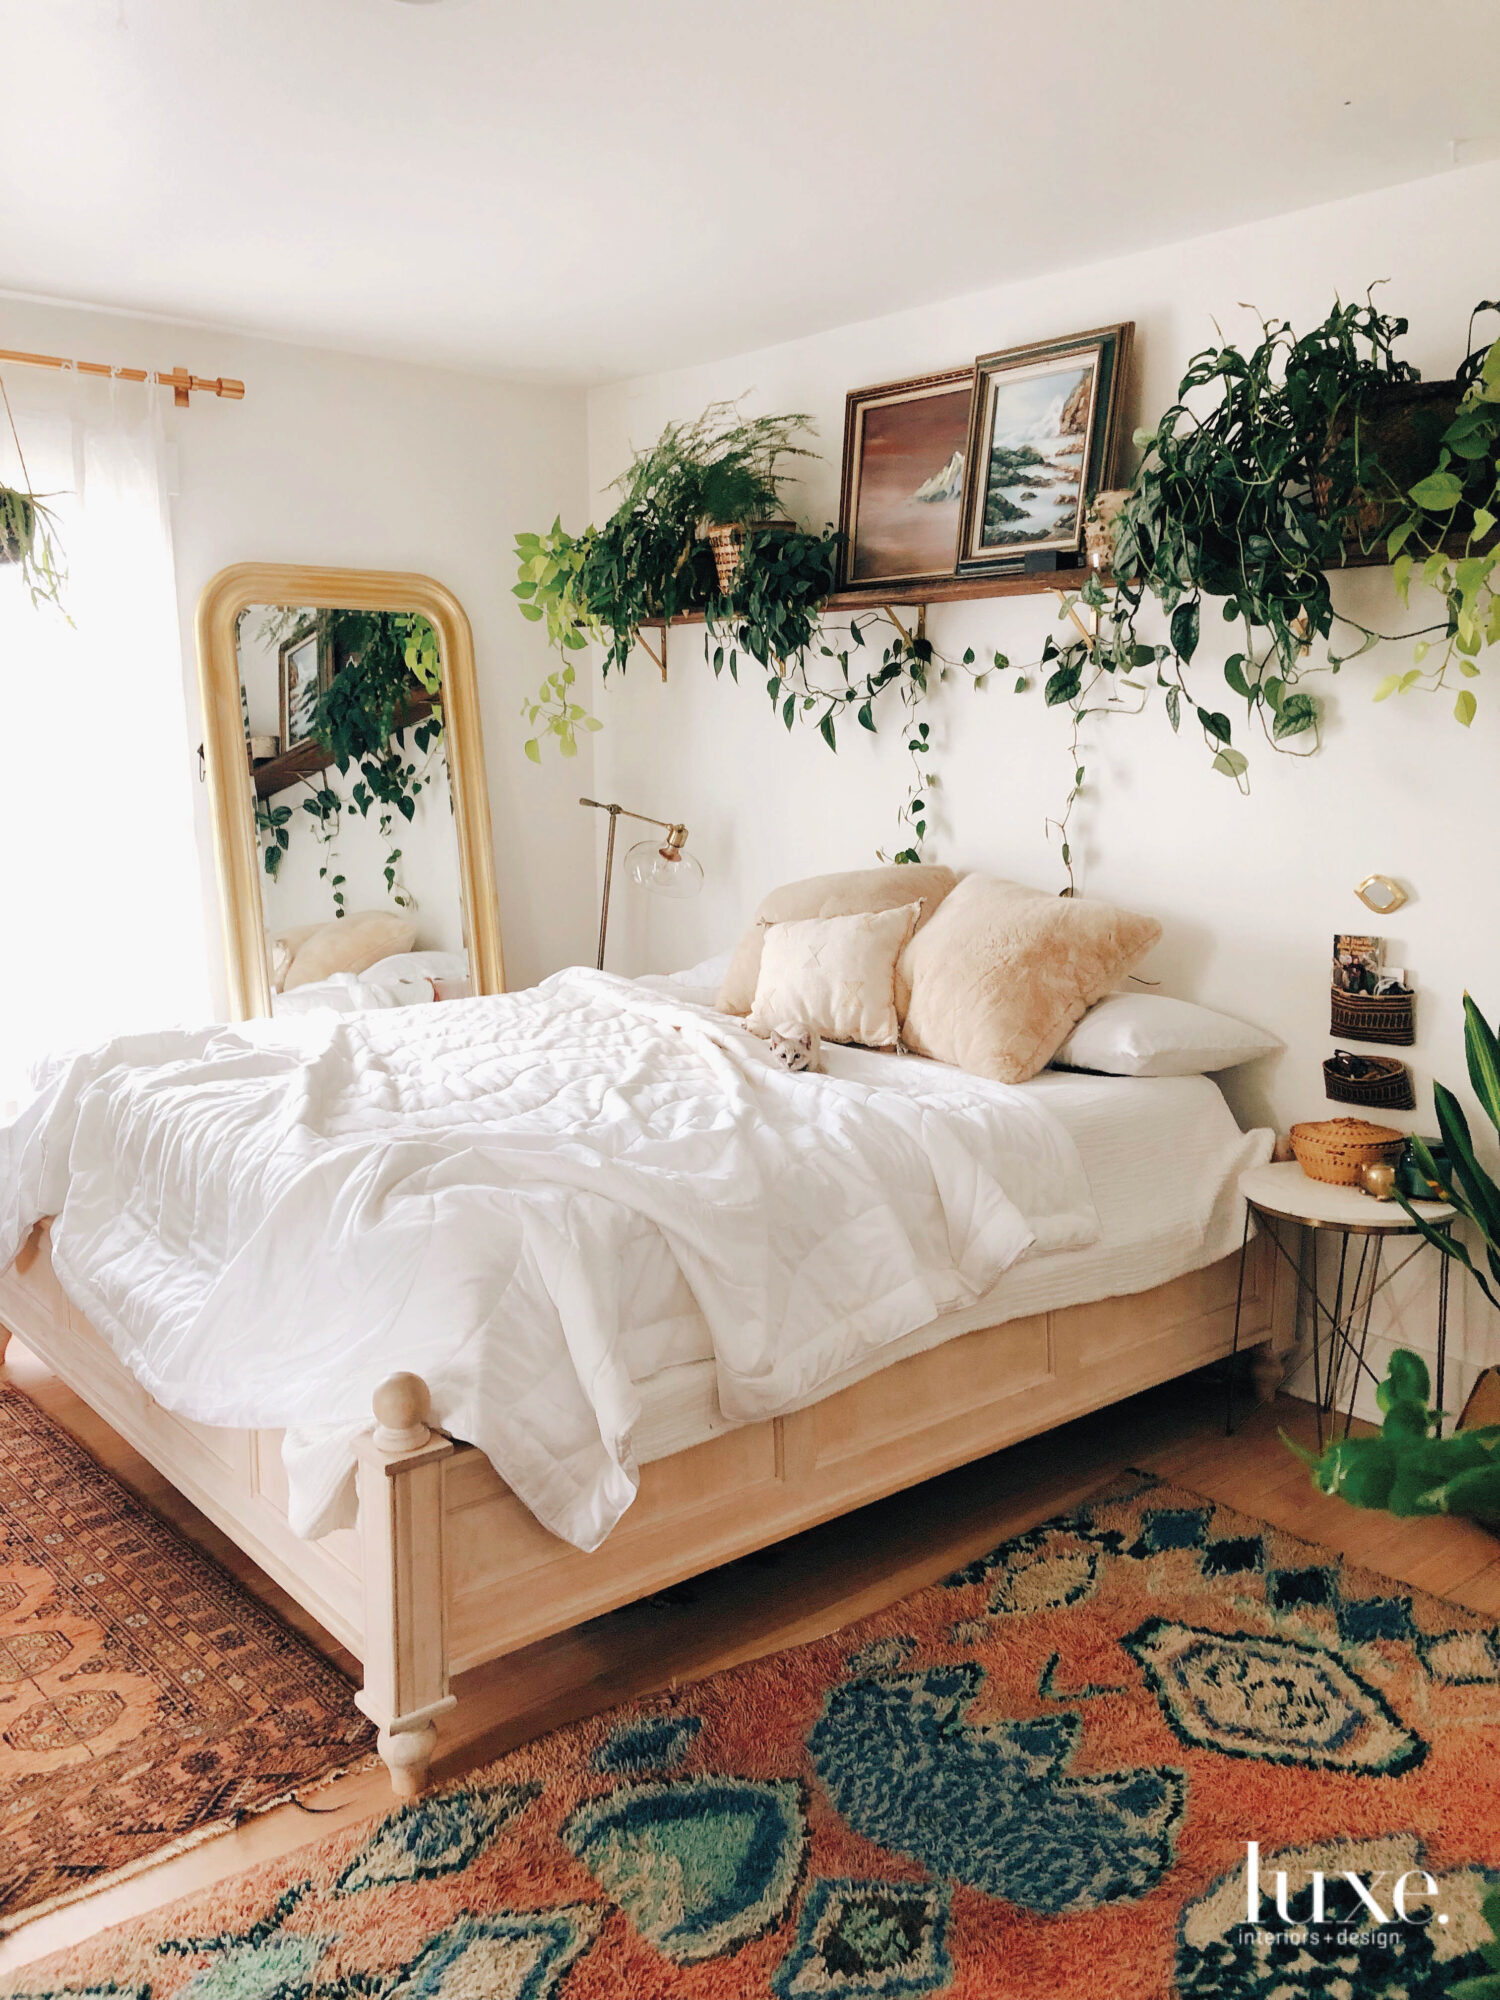 A peach and white colored bedspread is framed with dark green plants all over